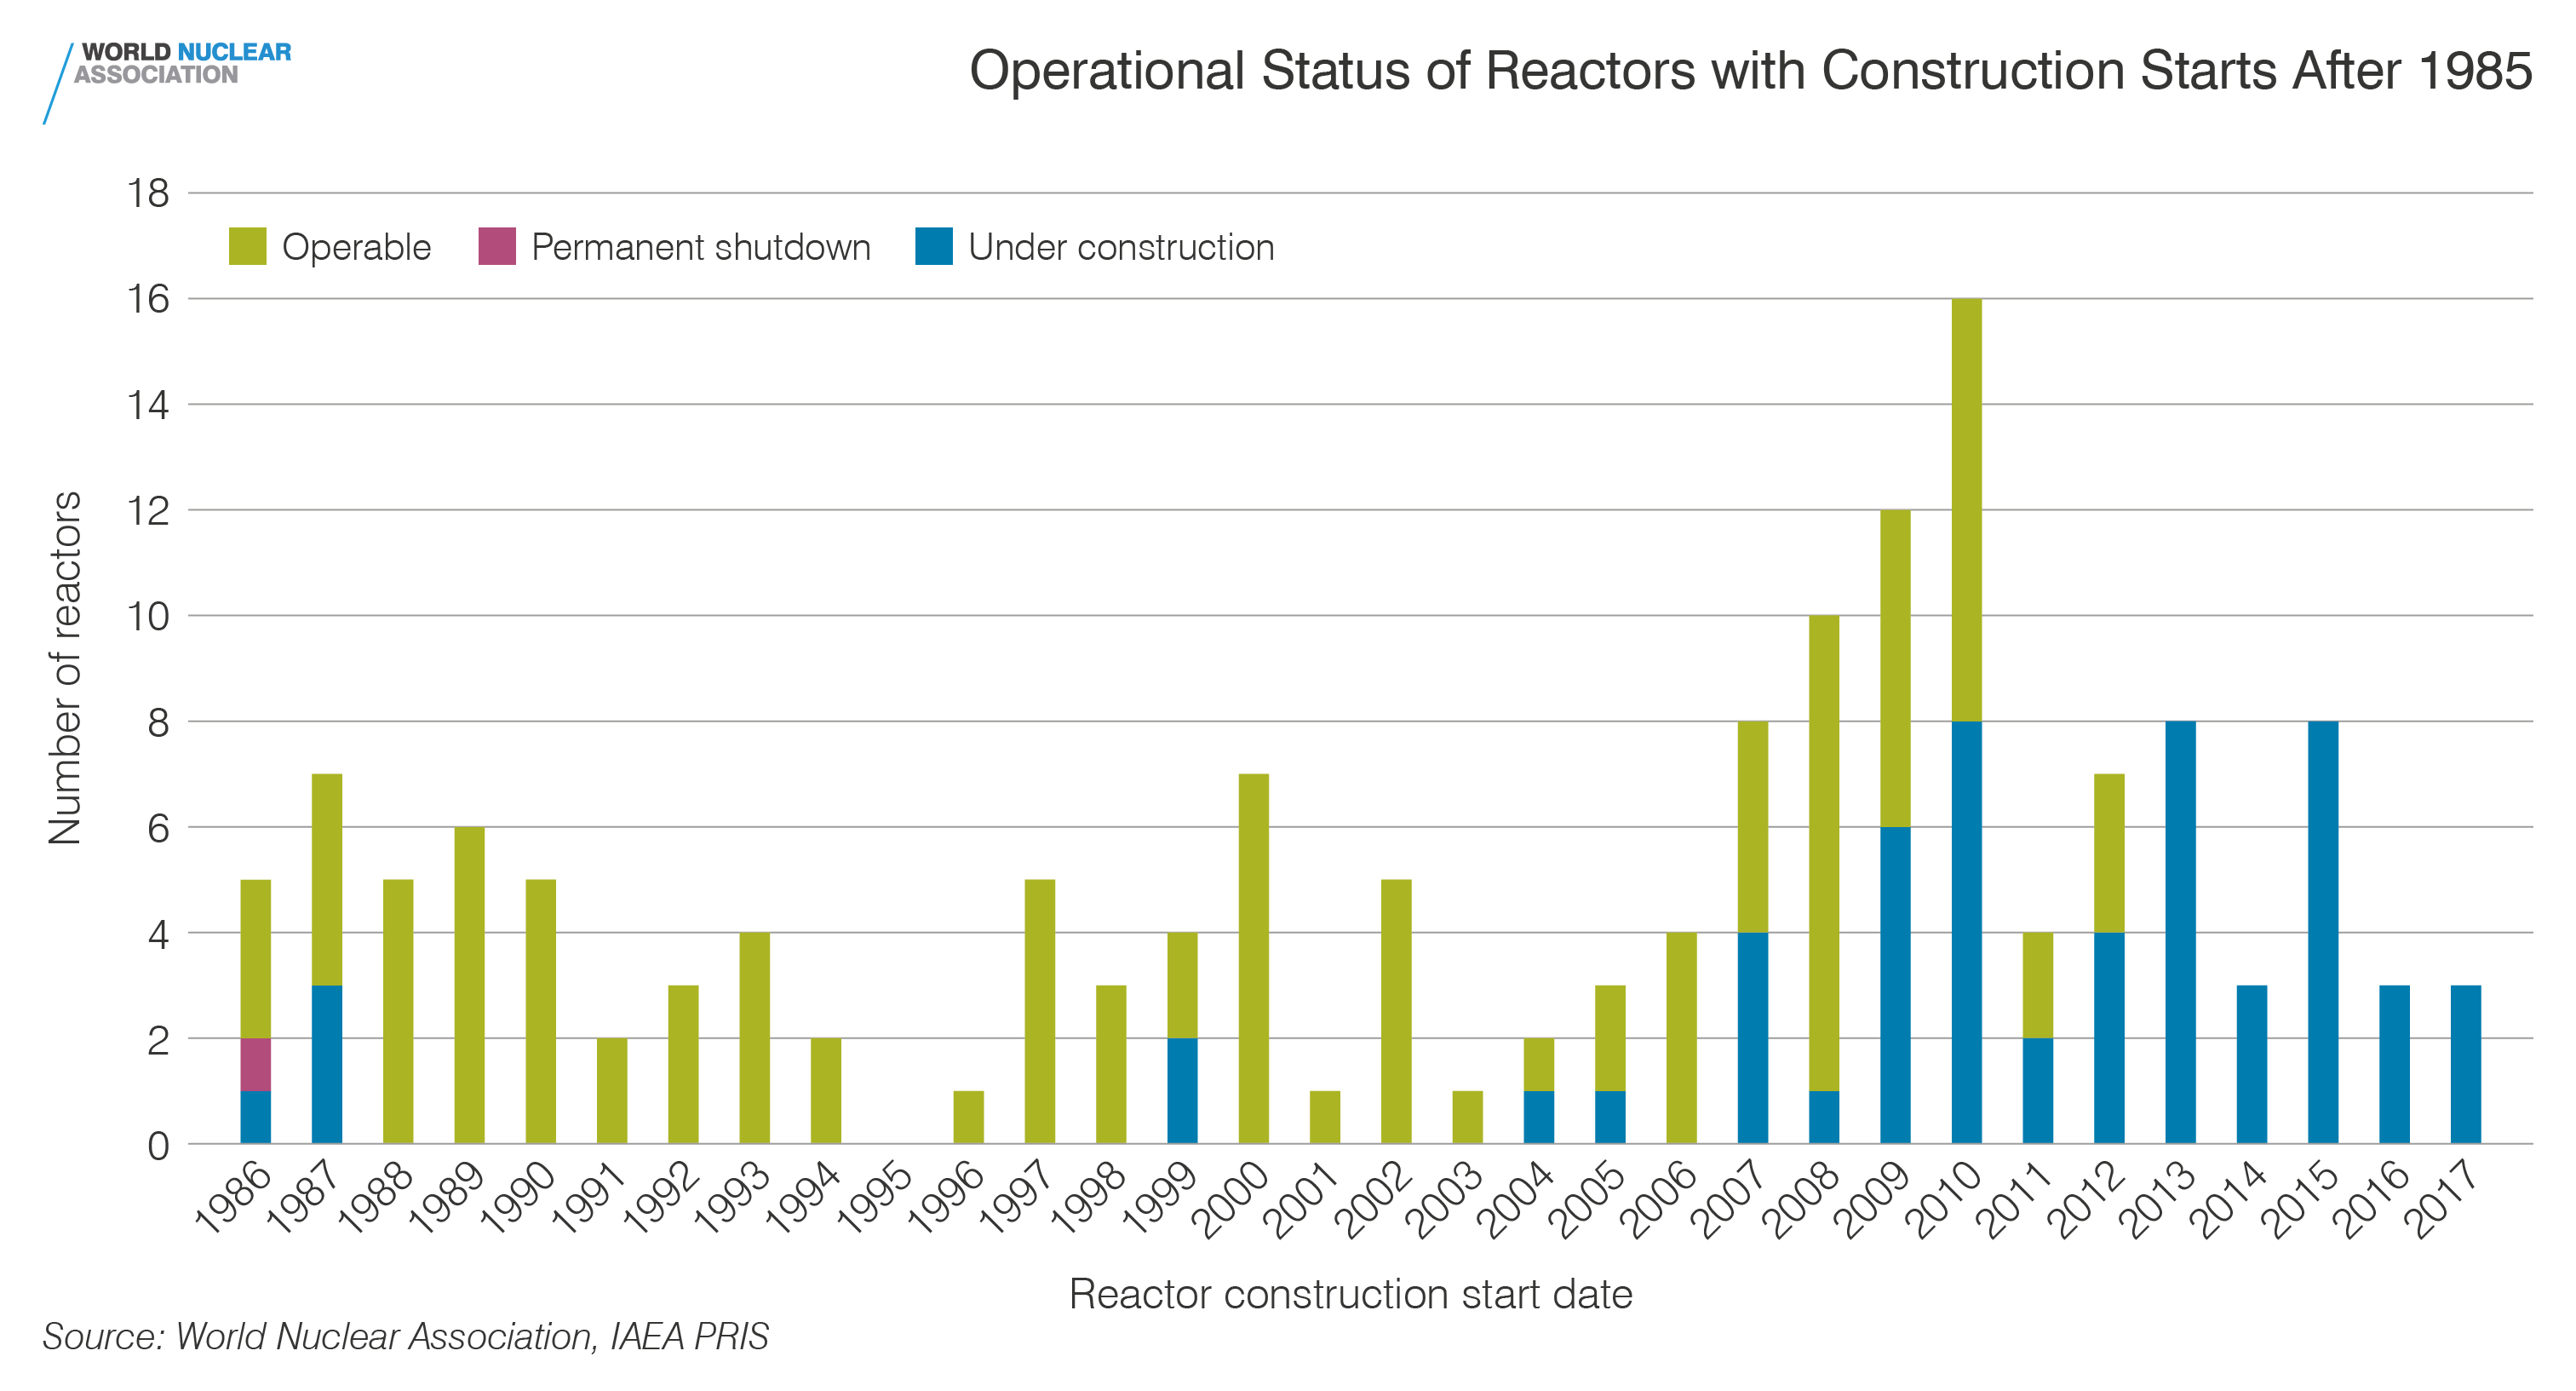 Operational status of reactors with construction starts after 1985